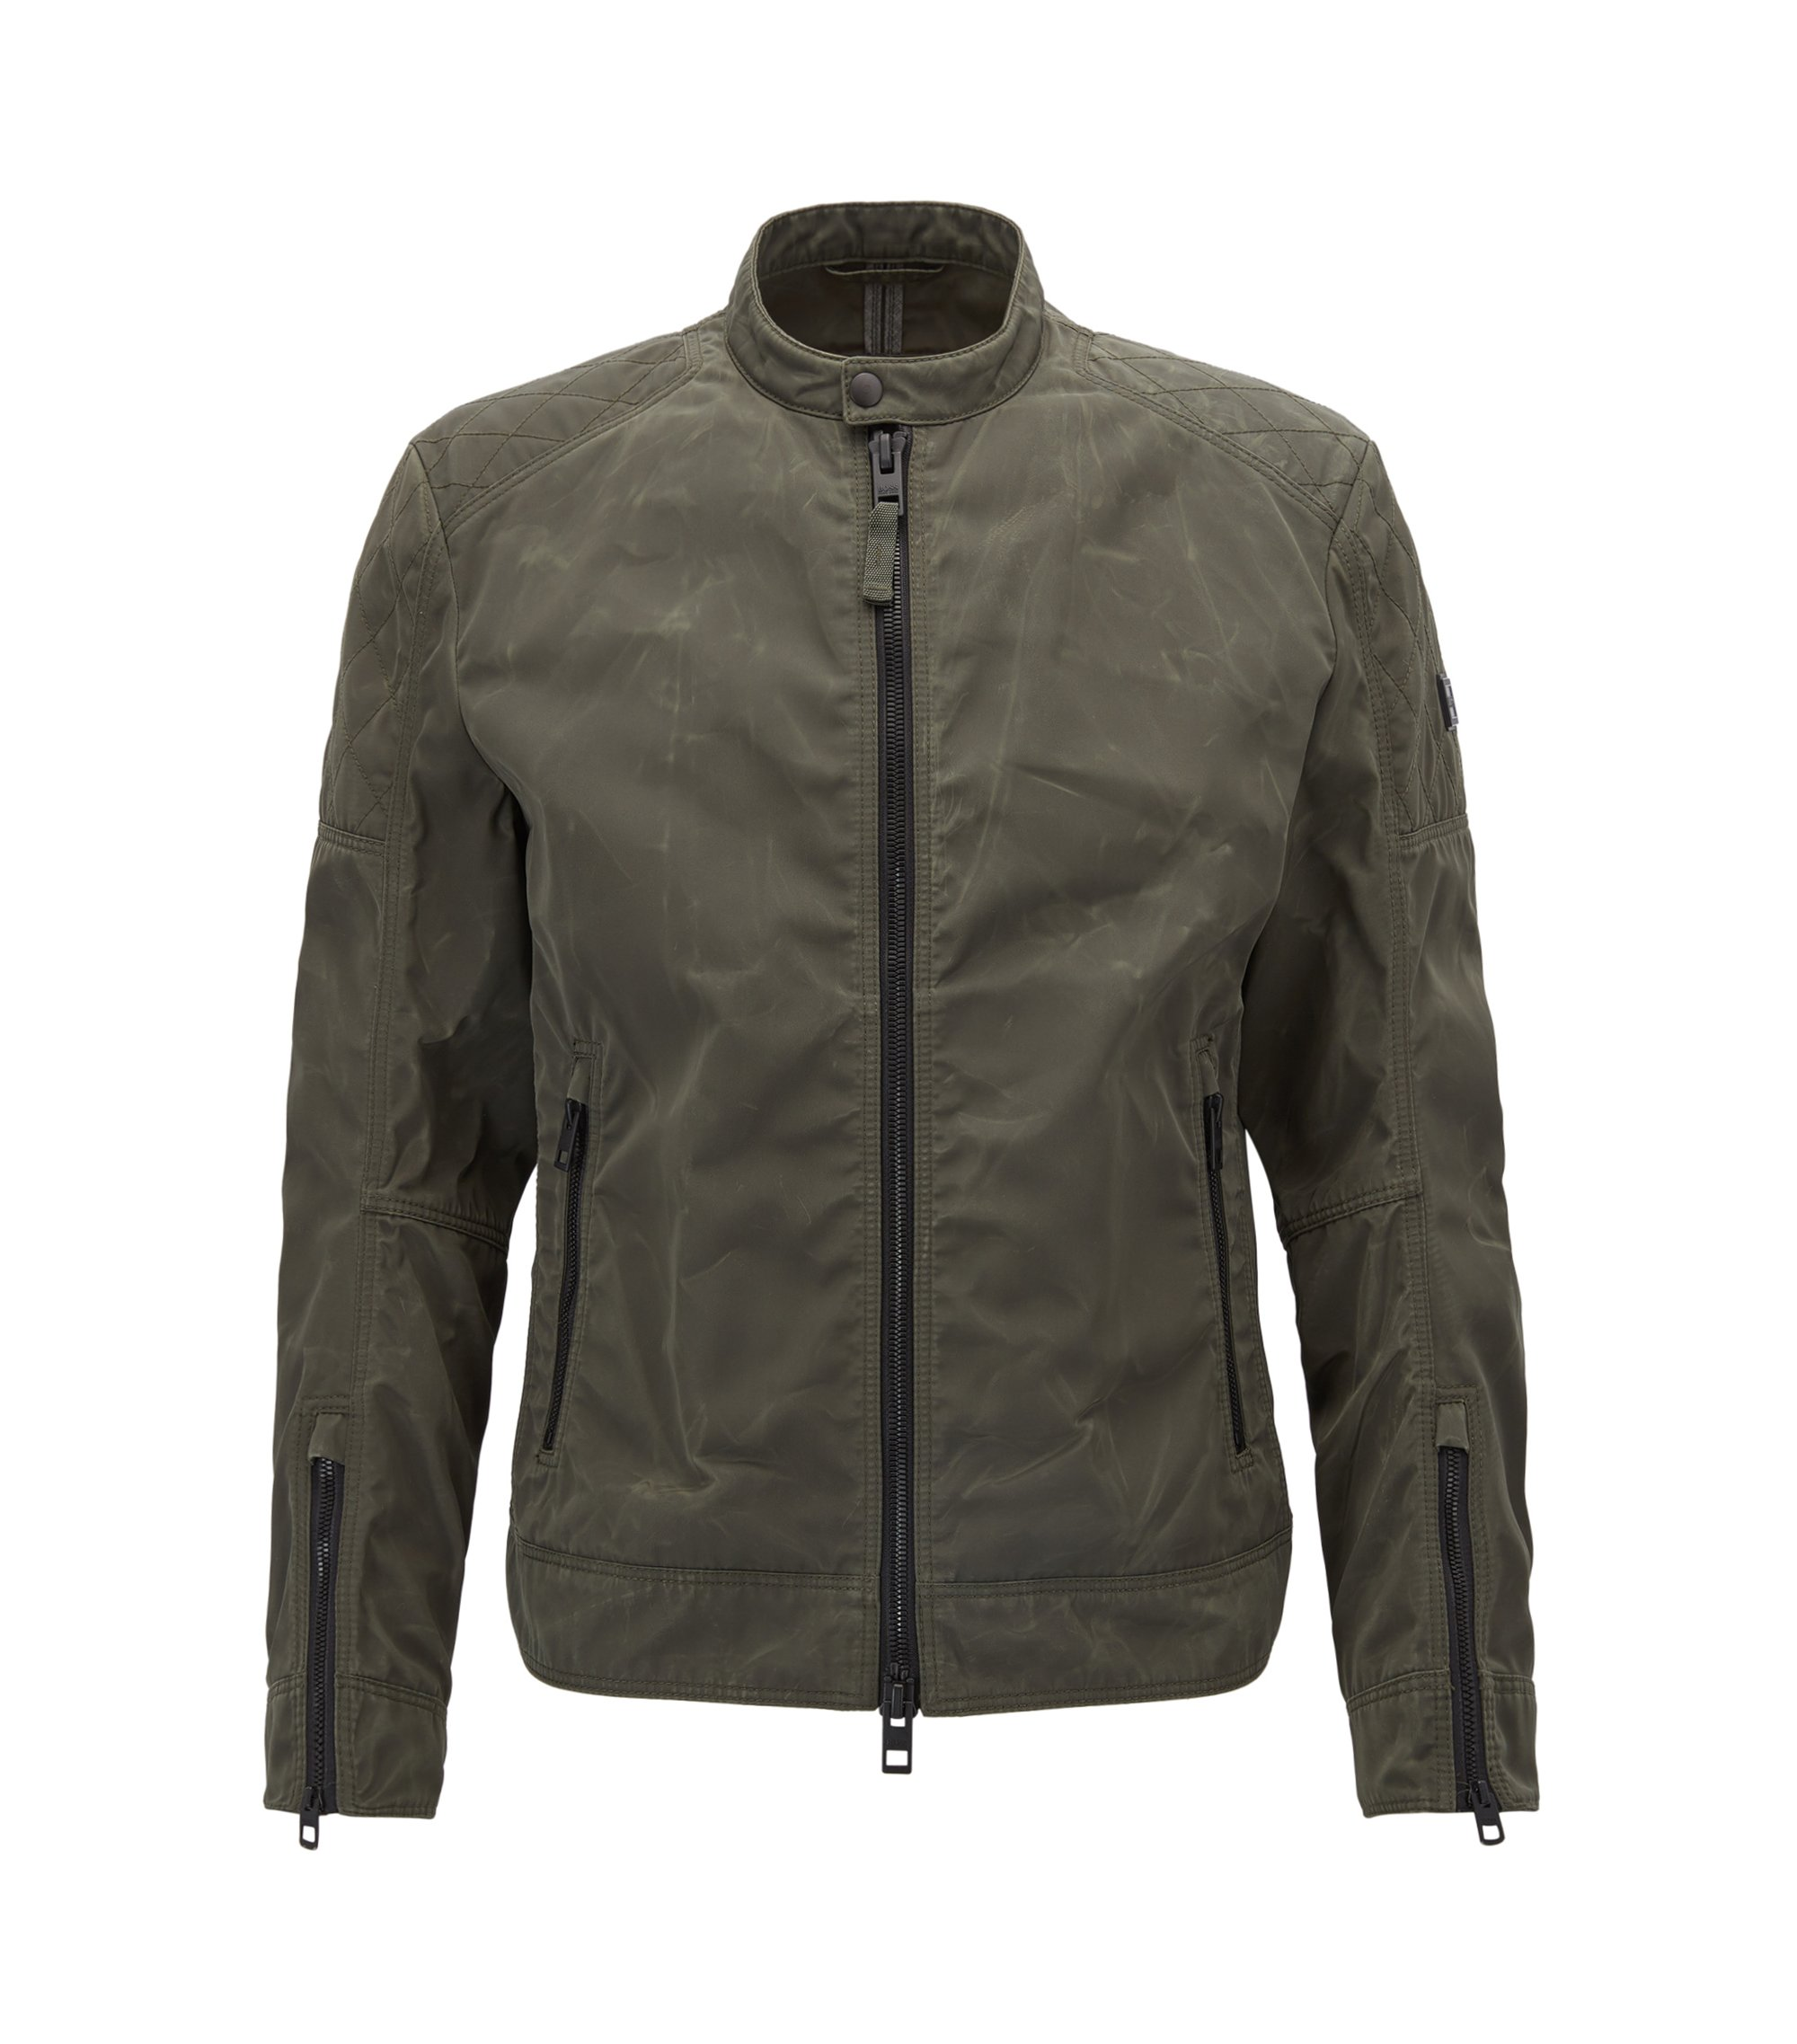 Giubbotto biker slim fit in twill cerato, Verde scuro